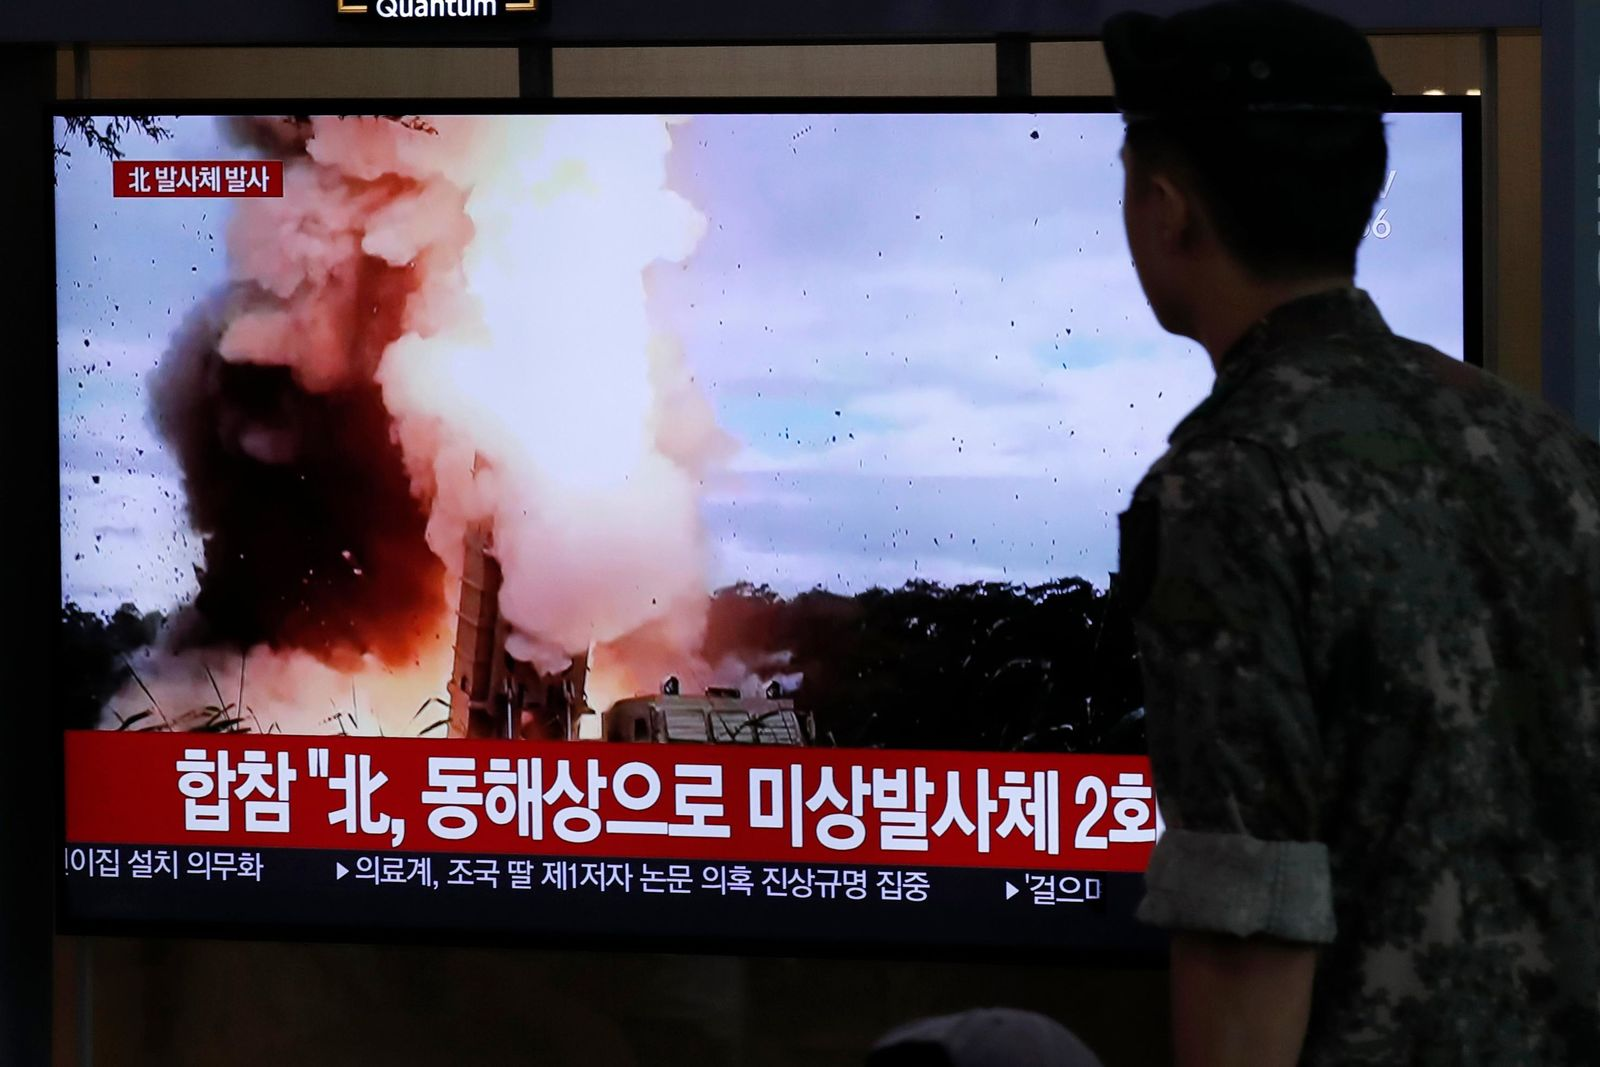 "A South Korean soldier watches a TV screen showing a news program reporting about North Korea's firing projectiles with a file image at the Seoul Railway Station in Seoul, South Korea, Saturday, Aug. 24, 2019. North Korea fired two suspected short-range ballistic missiles off its east coast on Saturday in the seventh consecutive week of weapons tests, South Korea's military said, a day after it threatened to remain America's biggest threat in protest of U.S.-led sanctions on the country. The Korean letters on TV read: ""North Korea fired projectiles."" (AP Photo/Lee Jin-man)"